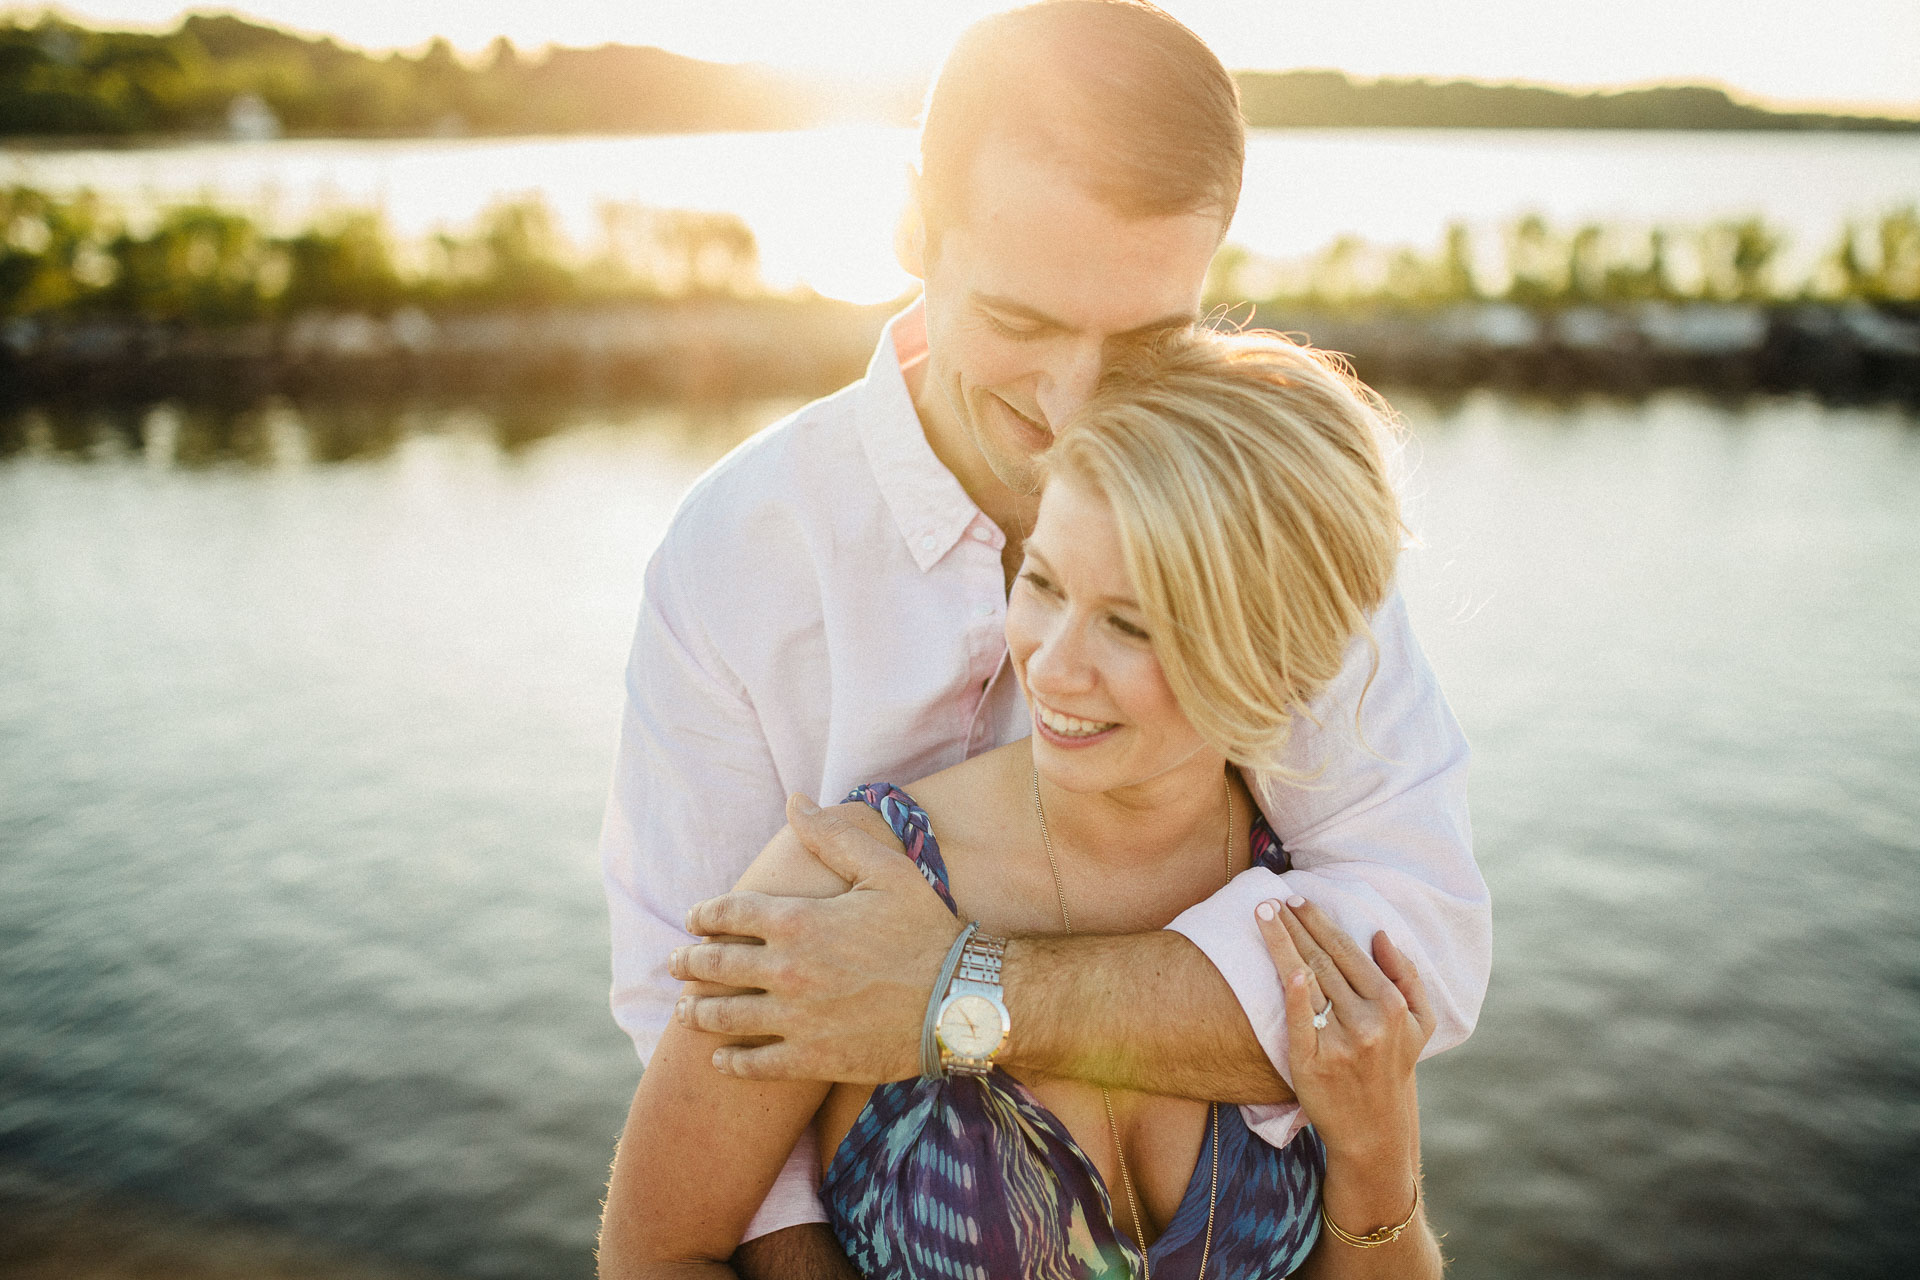 Kristin_Sasa_Engagement_Herrington_Maryland_JeanLaurentGaudy_058